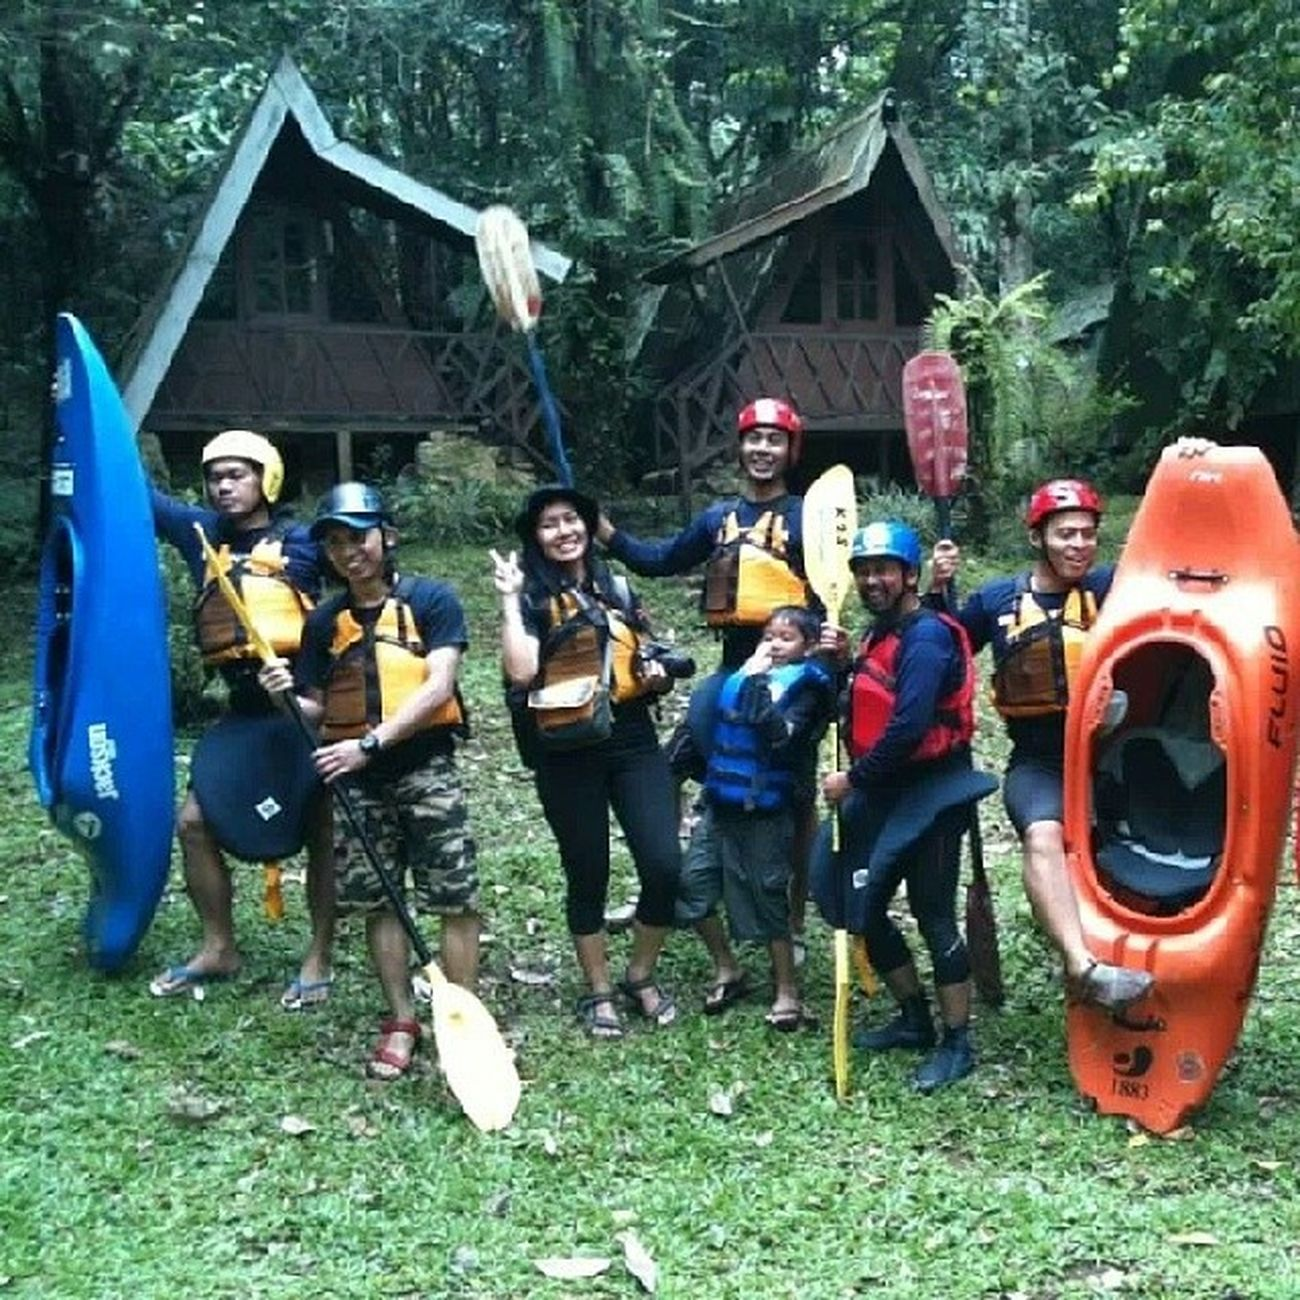 Kayak Kayaking Sport Watersport traveling bogor indonesia k2s krakatoakayakschool